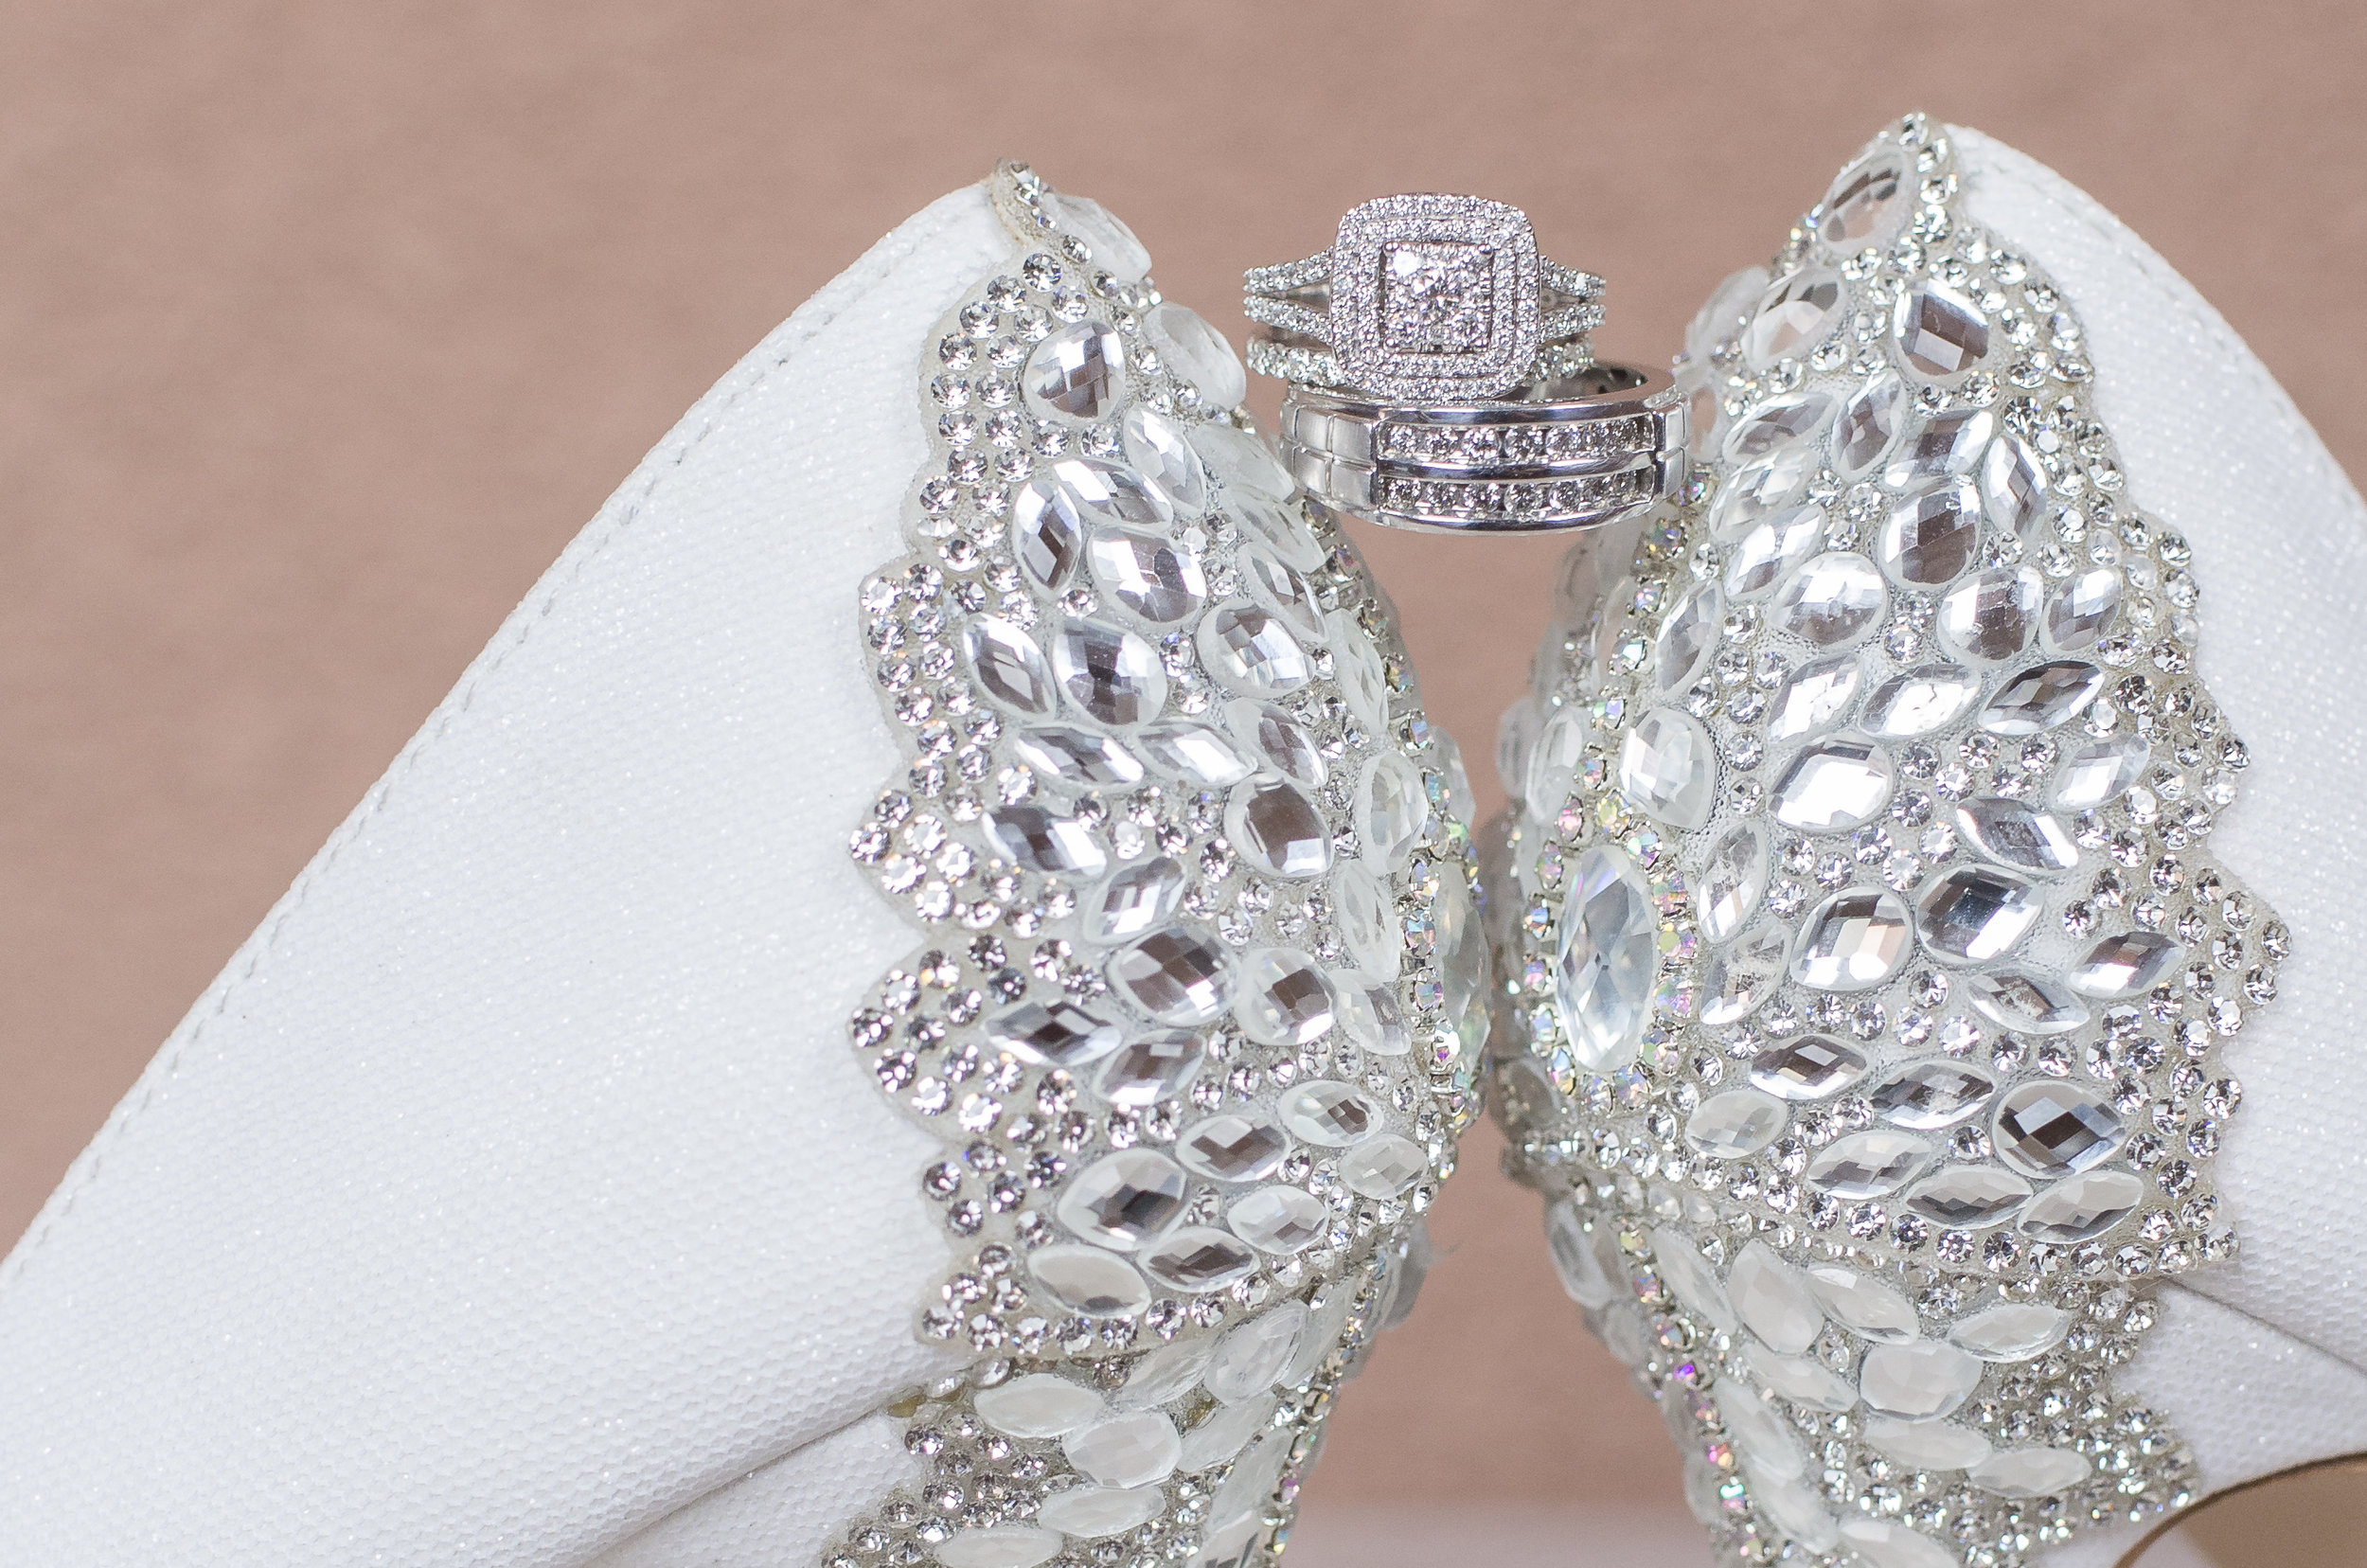 Diamond -starting at $3,950 - The Diamond package includes 10 hours day-of coverage, 2 hours rehearsal dinner coverage, an engagement session, a minimum of 800 wedding-day images, 2 photographers, professional photo edits, and a private online gallery.